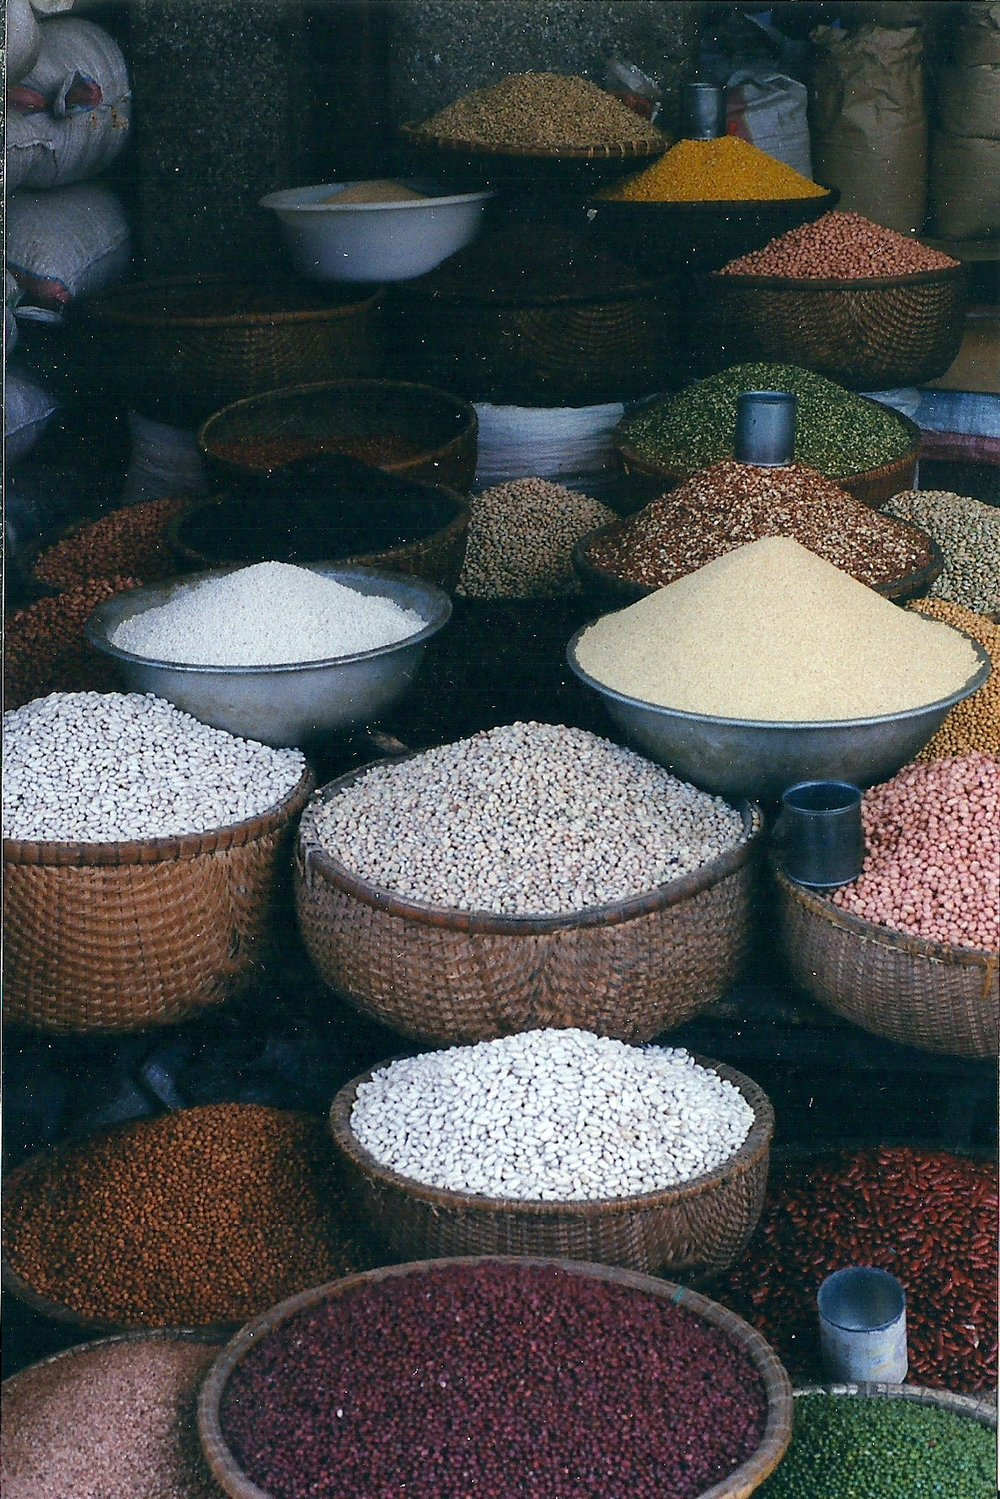 Beans & Pulses in th Market, Viet Nam